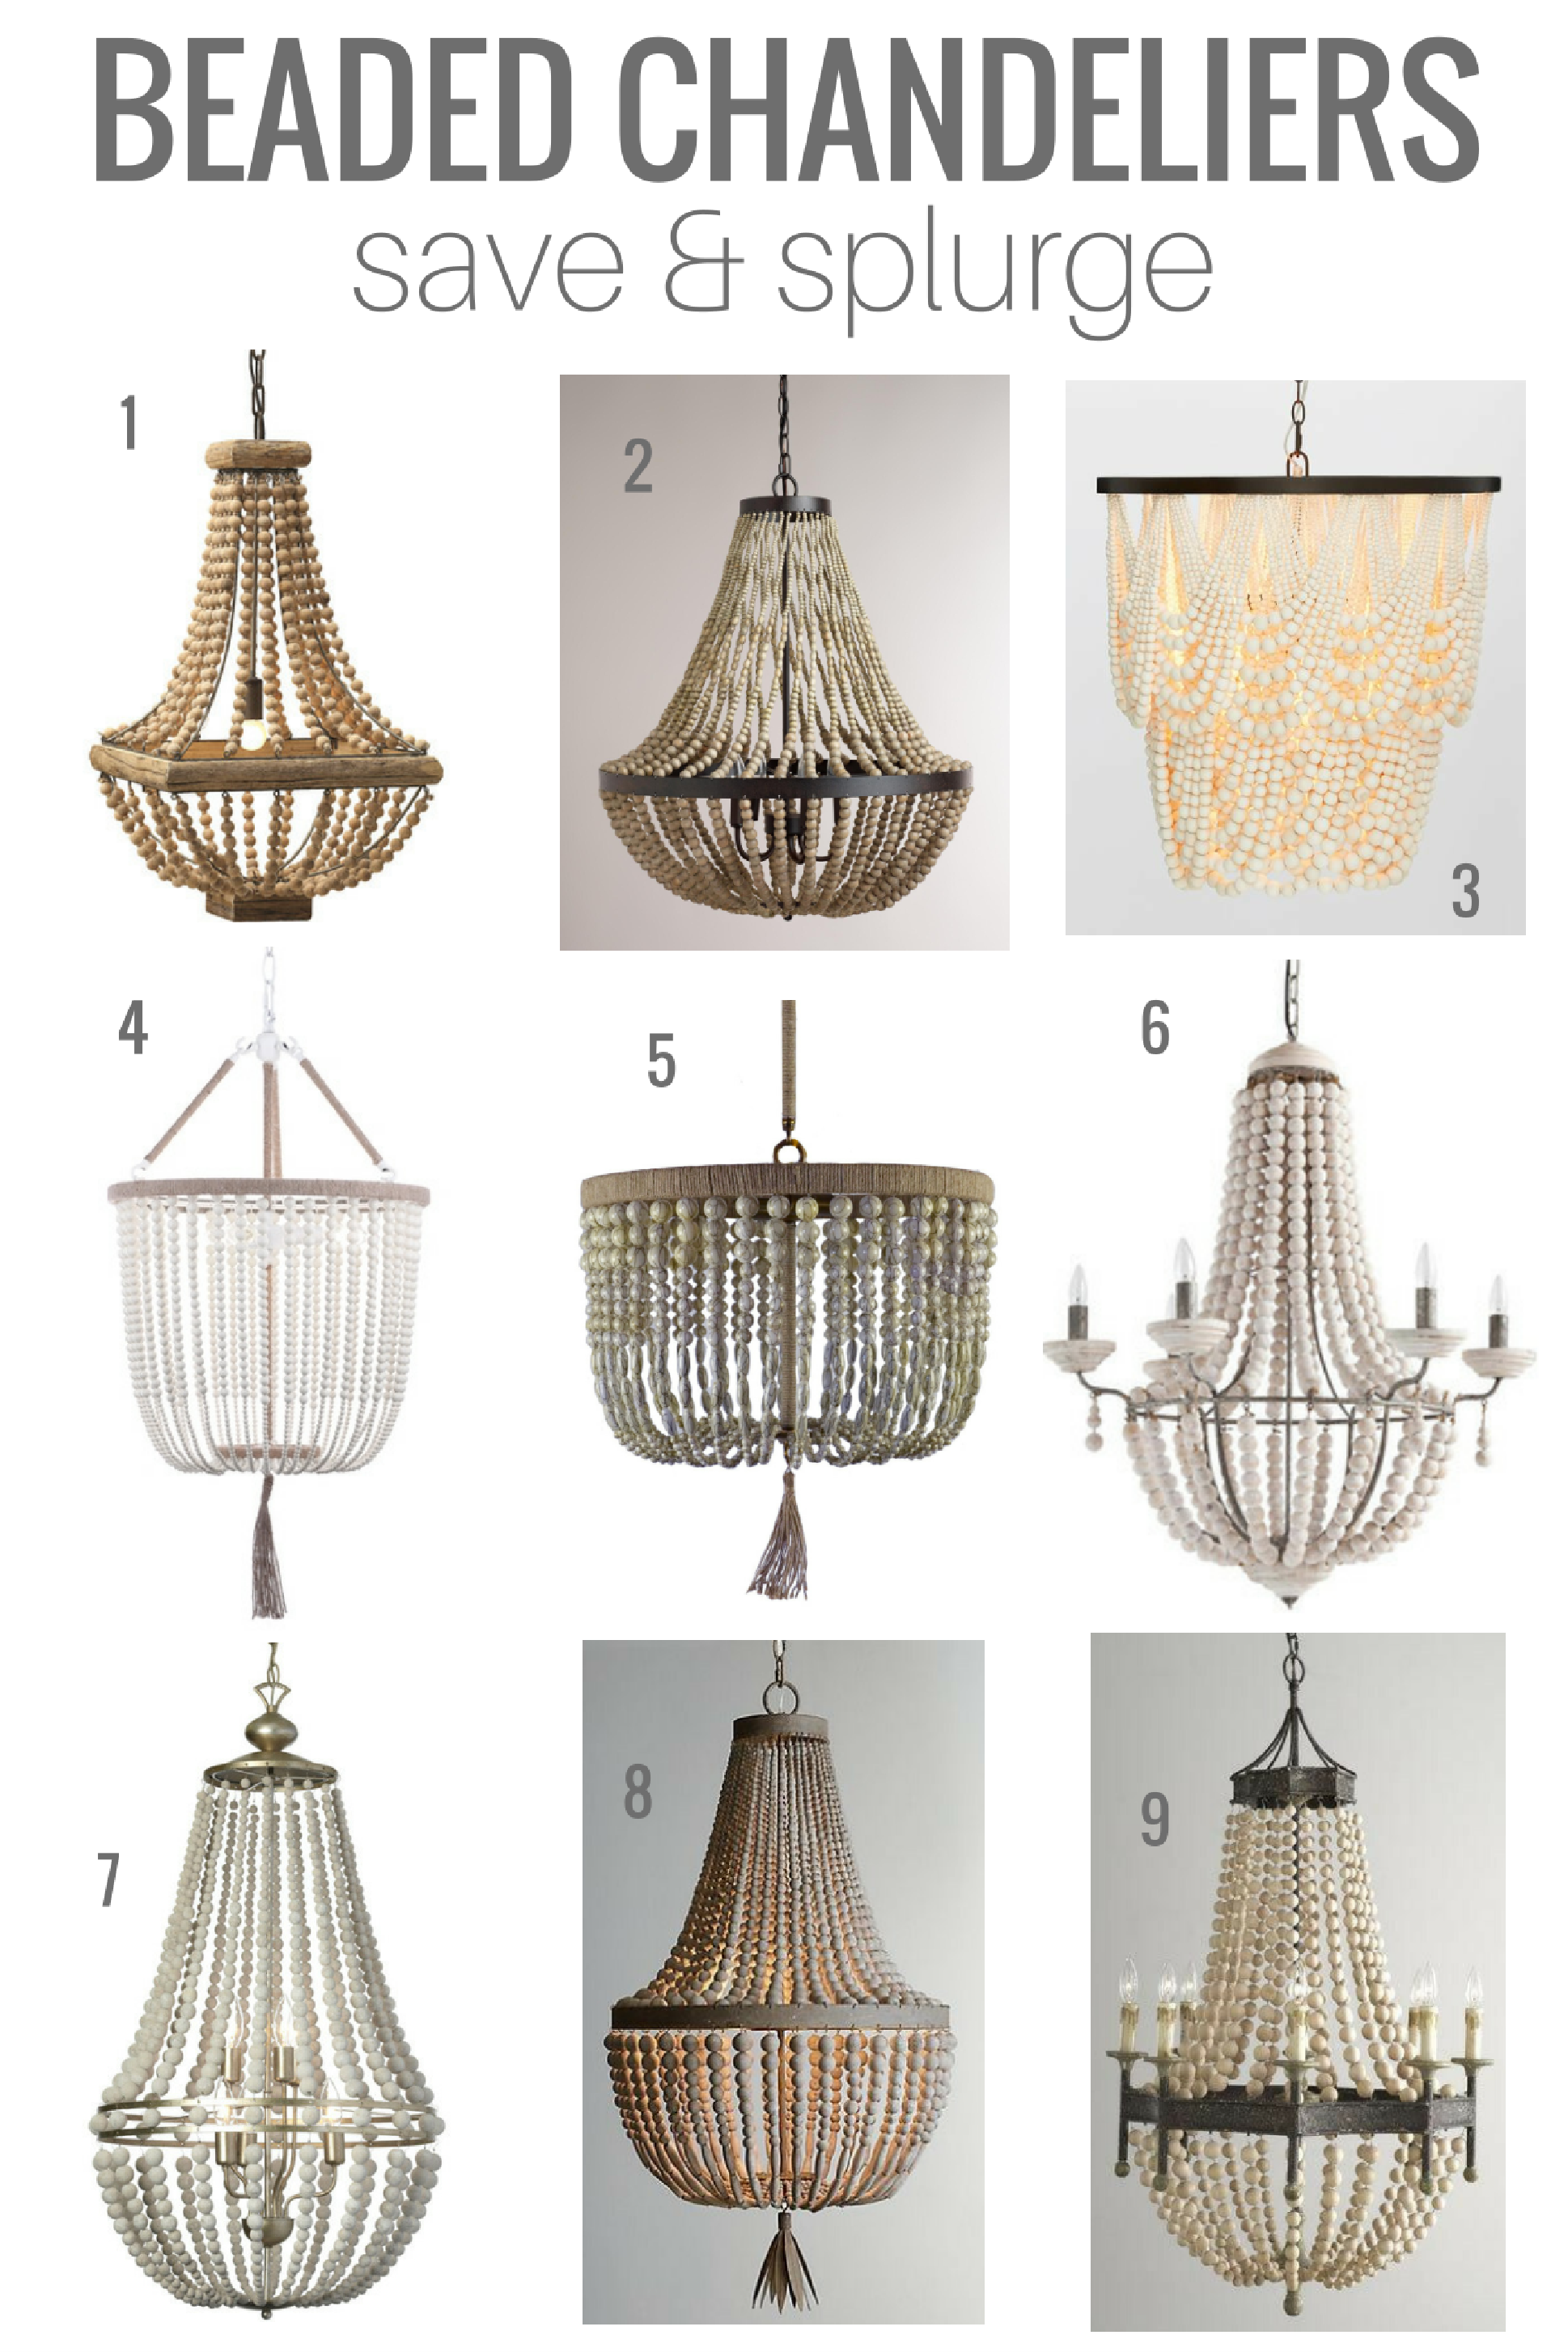 Beaded Chandeliers Invaluable Lighting Lessons Wood Bead